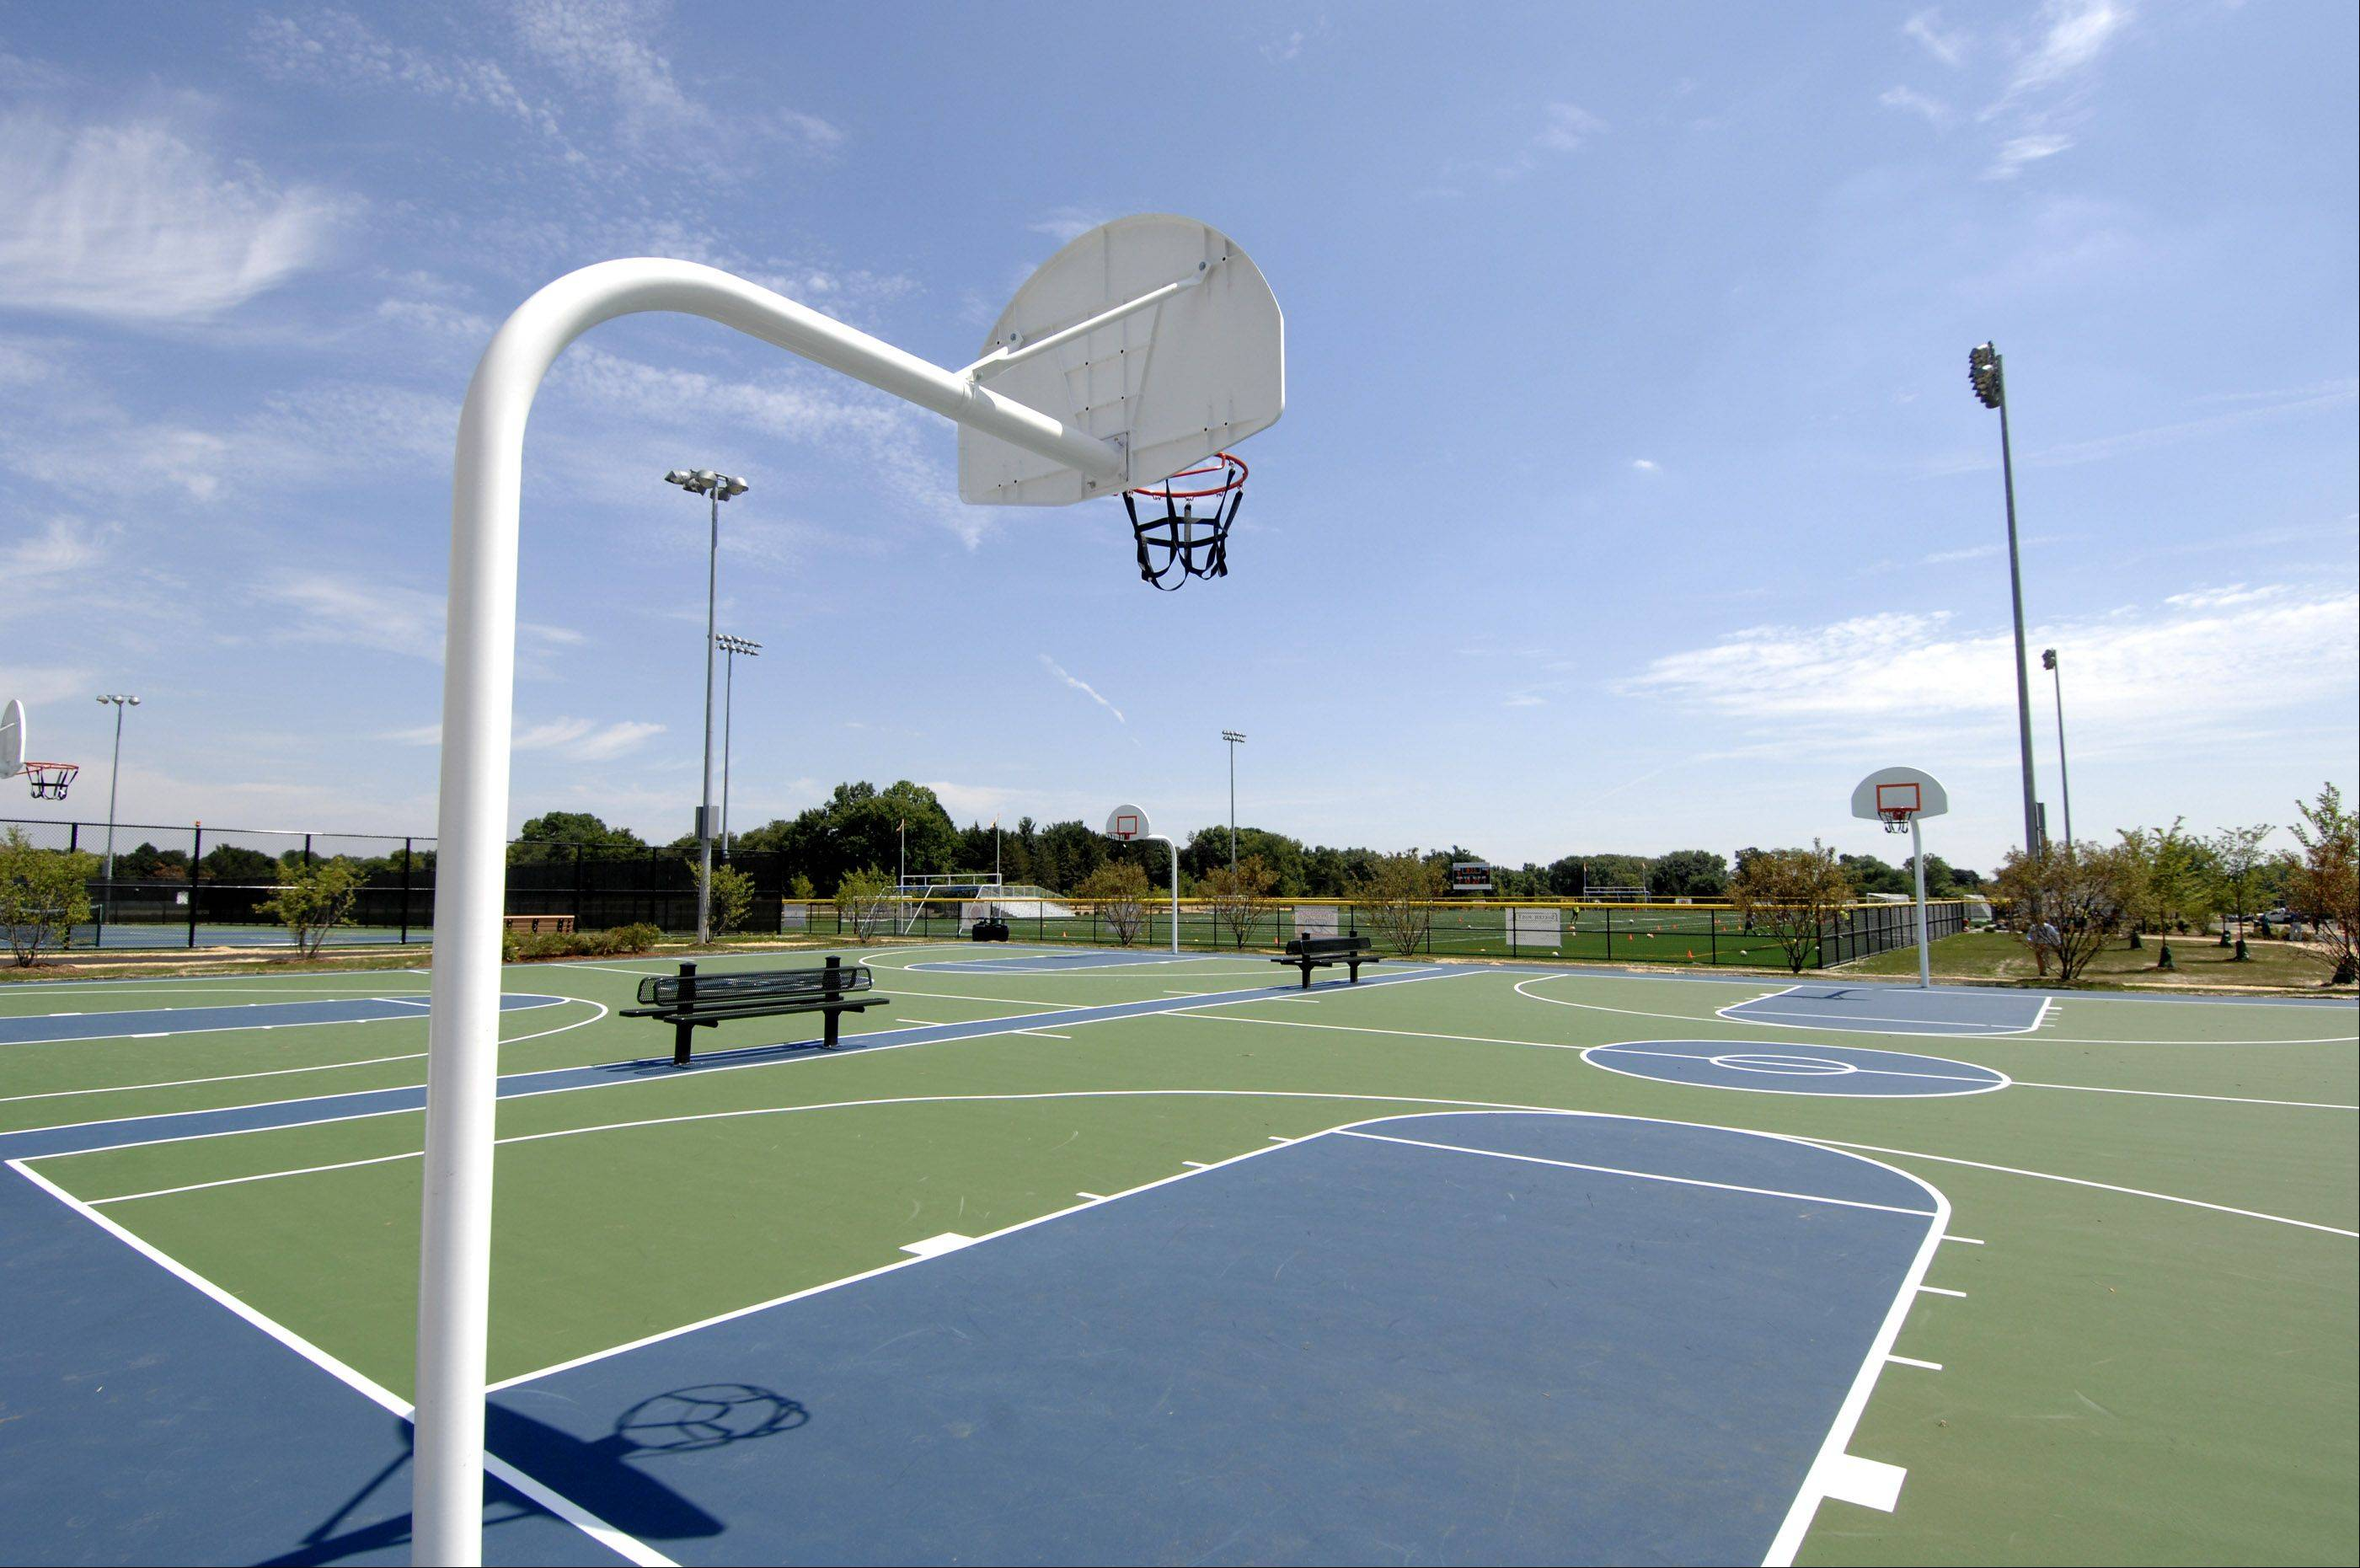 Two lighted basketball courts are part of the Nike Sports Complex expansion, which opens Saturday in Naperville.